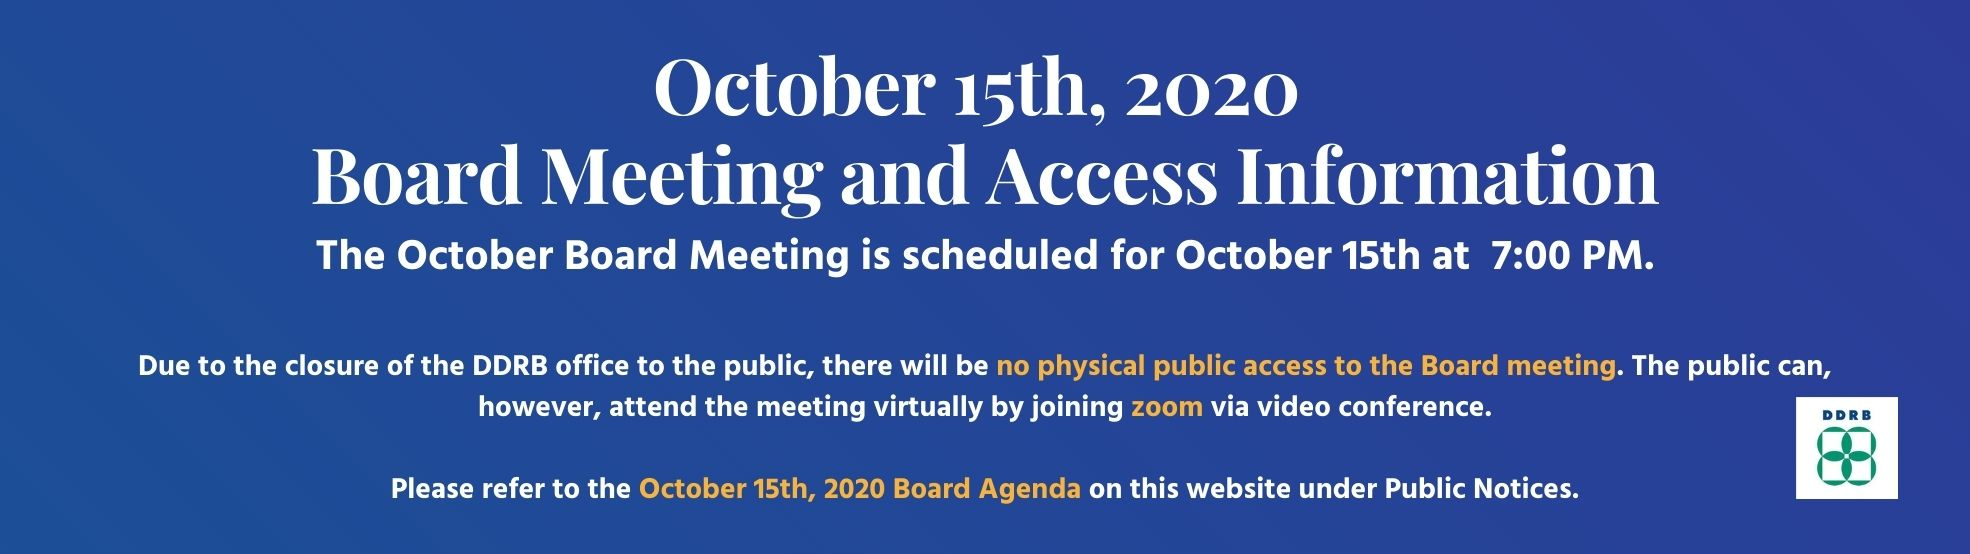 DDRB October 15 Board Meeting Website Notice